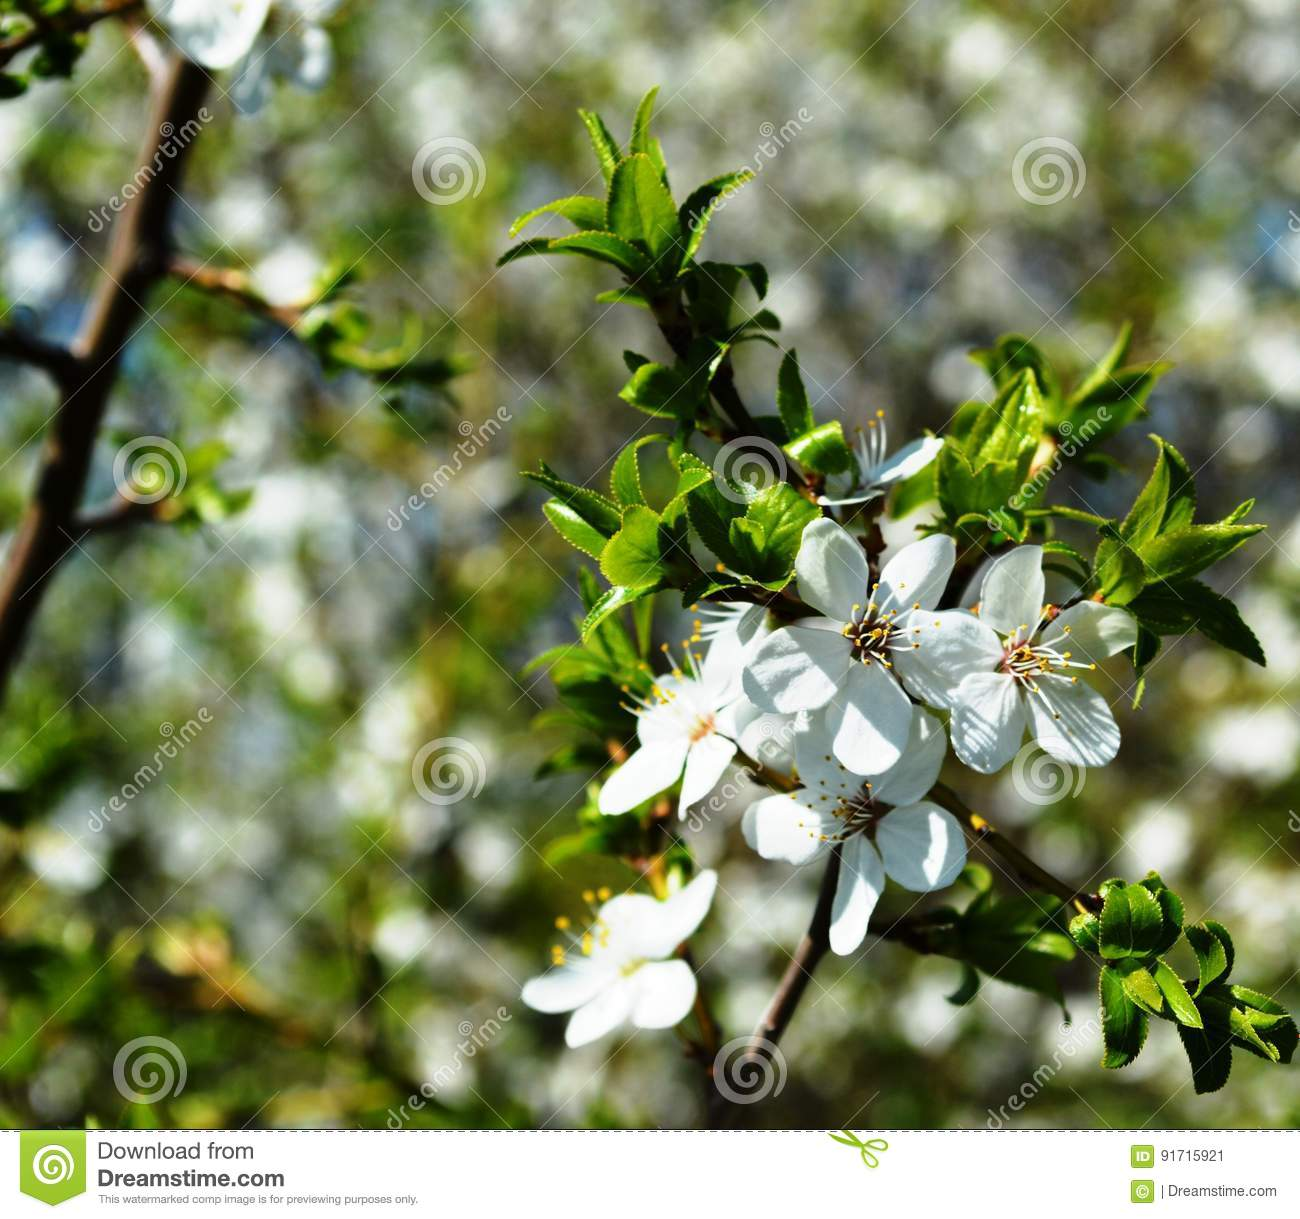 The spring bloom in russia of the cherry trees white flowers stock beauty bloom cherry flowering flowers russia shrubs spring trees white mightylinksfo